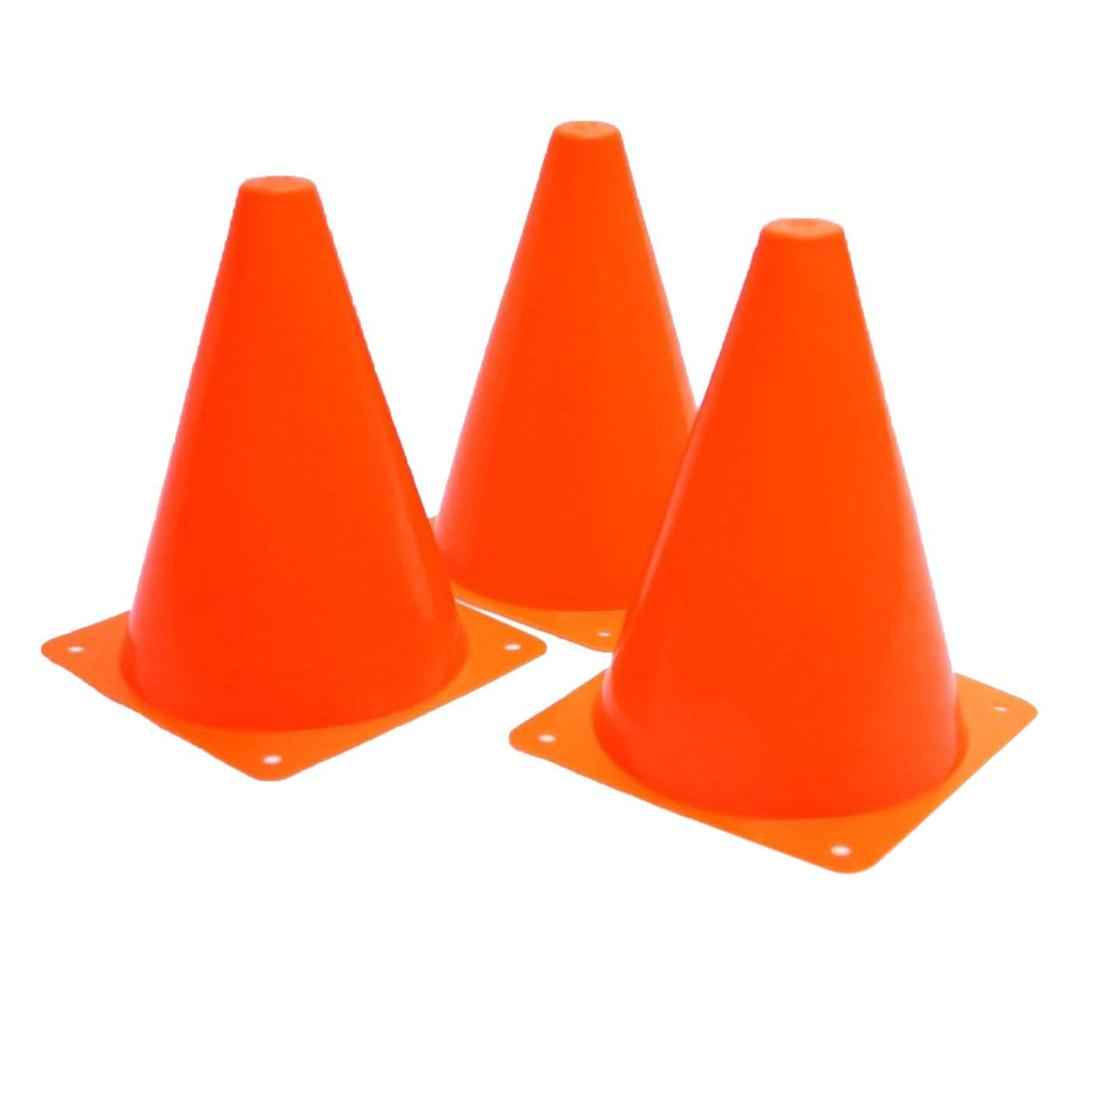 Plastic Traffic Cones - 12 Pack Of Multipurpose Construction Theme Party Sports Activity Cones For Kids Outdoor And Indoor Gaming And Festive Events By Ertic.